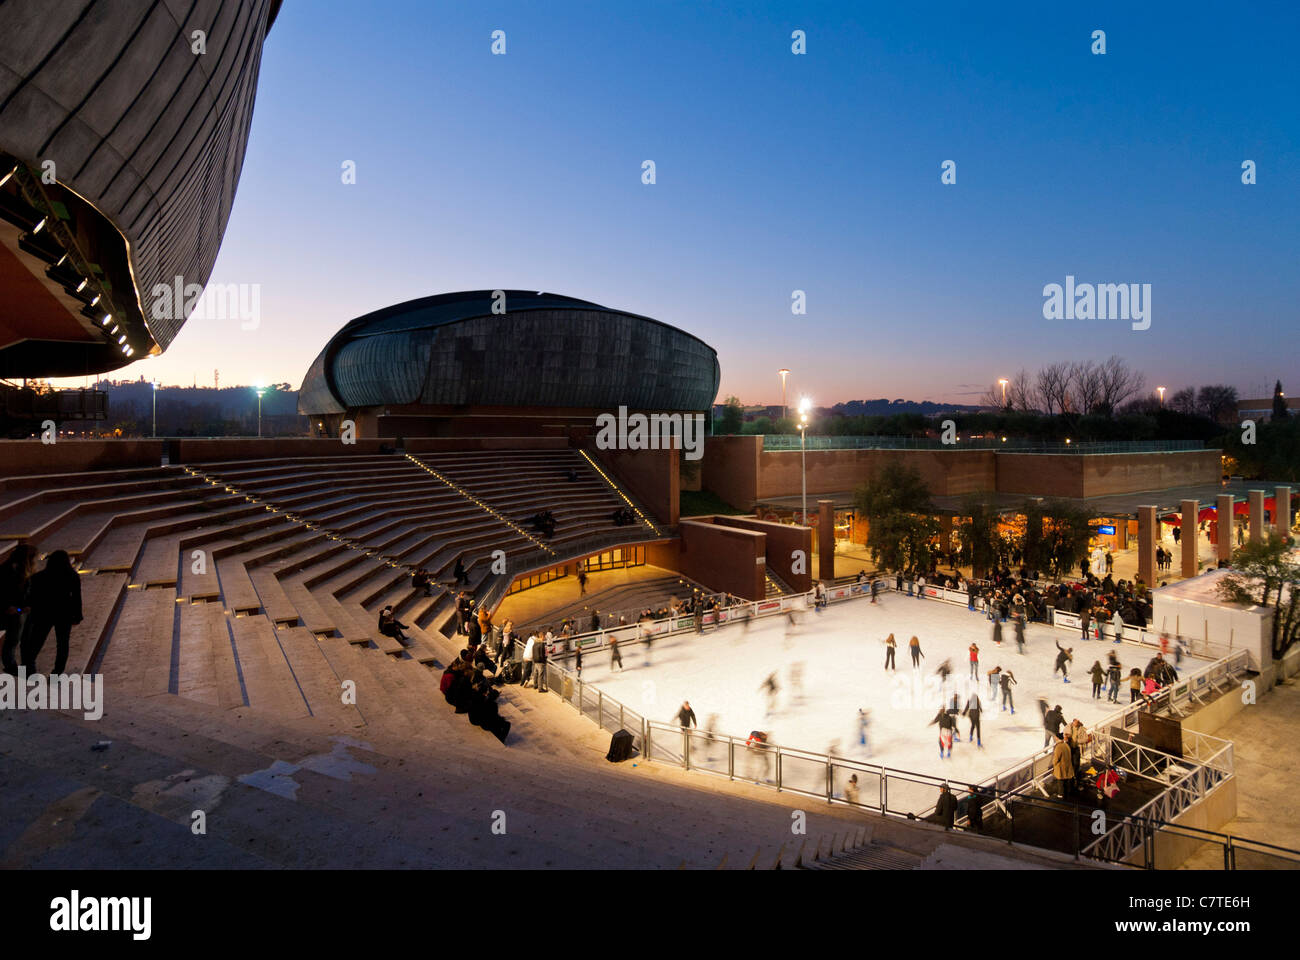 Rome. Italy. Ice skating at the Auditorium designed by Renzo Piano (Parco della Musica). Stock Photo